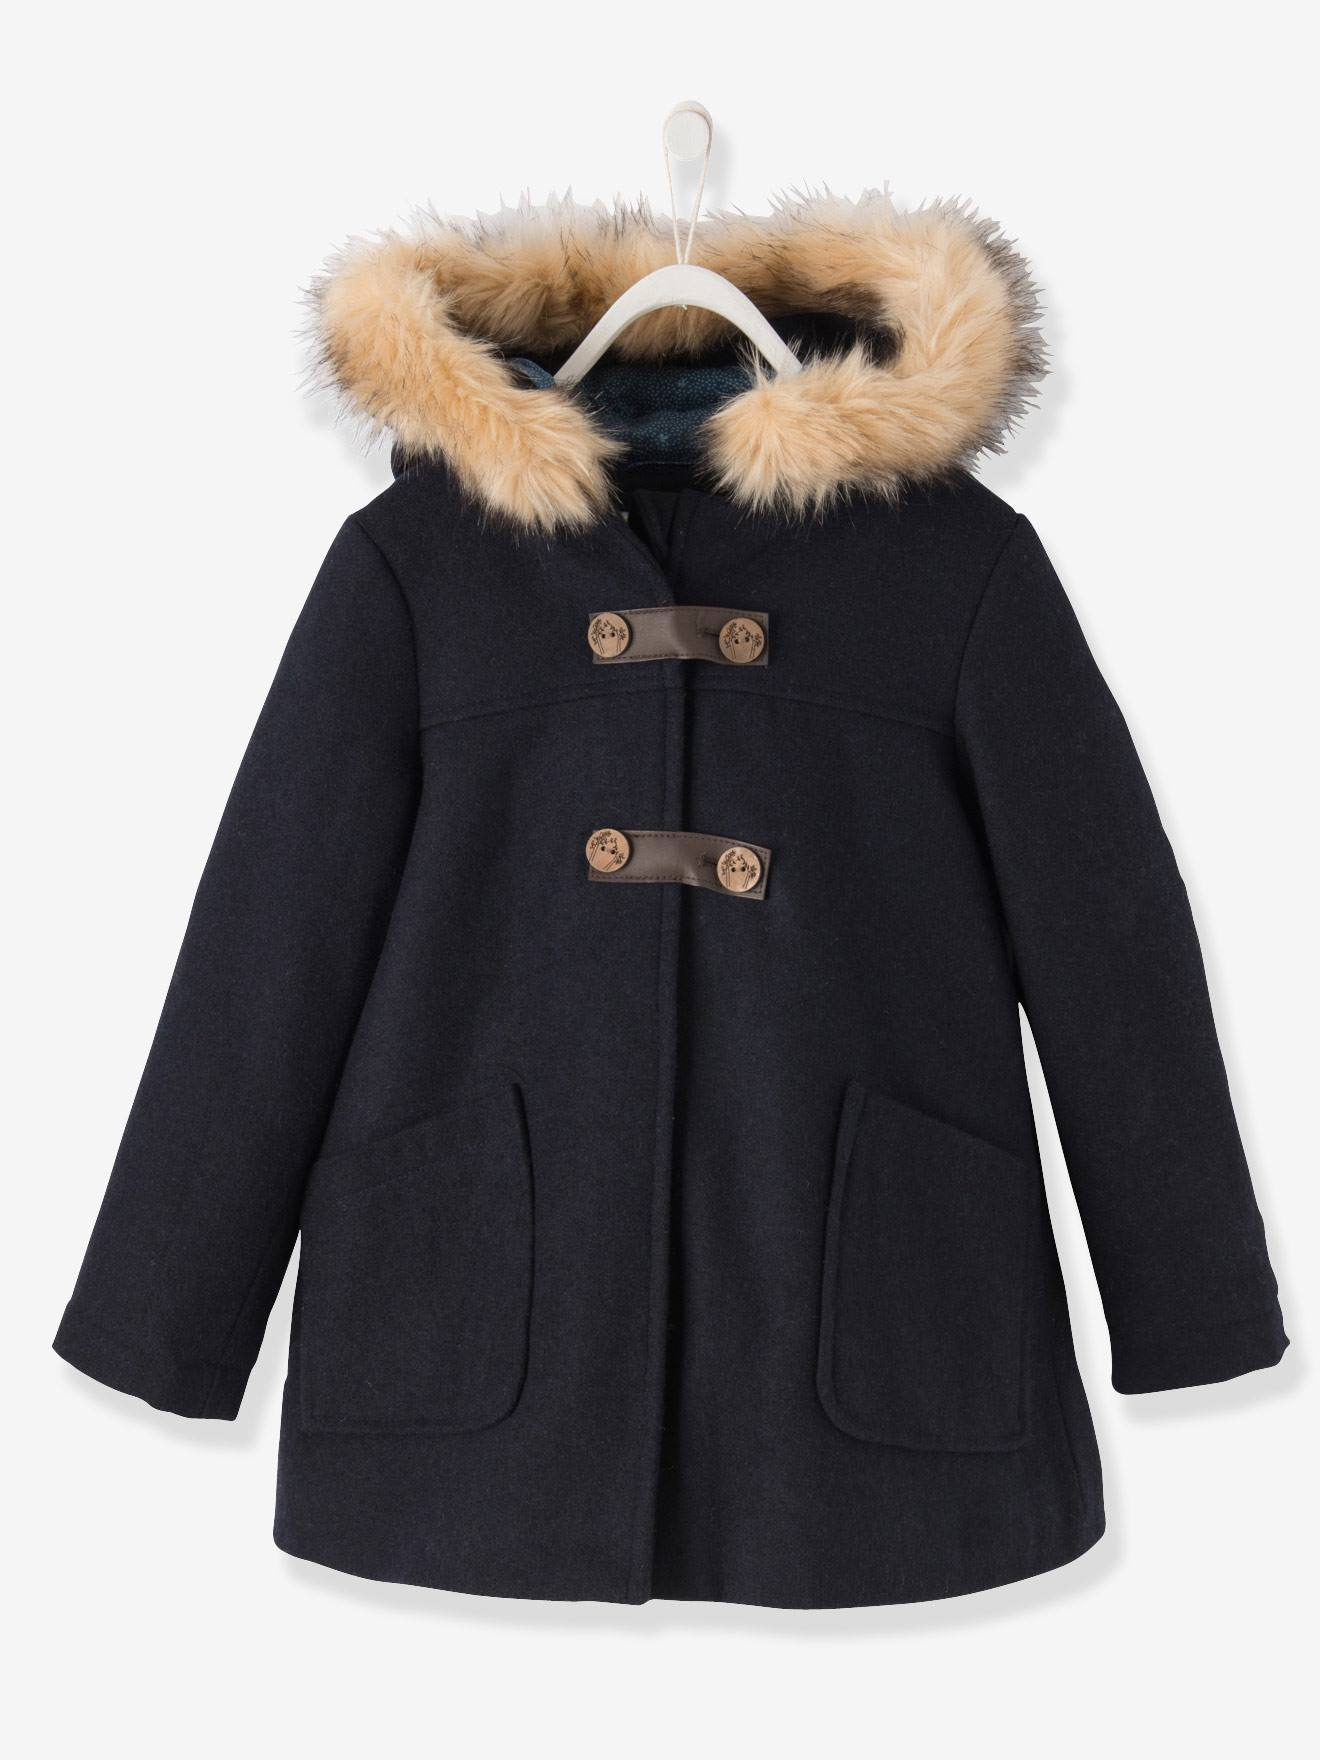 Magasin de manteau pour fille